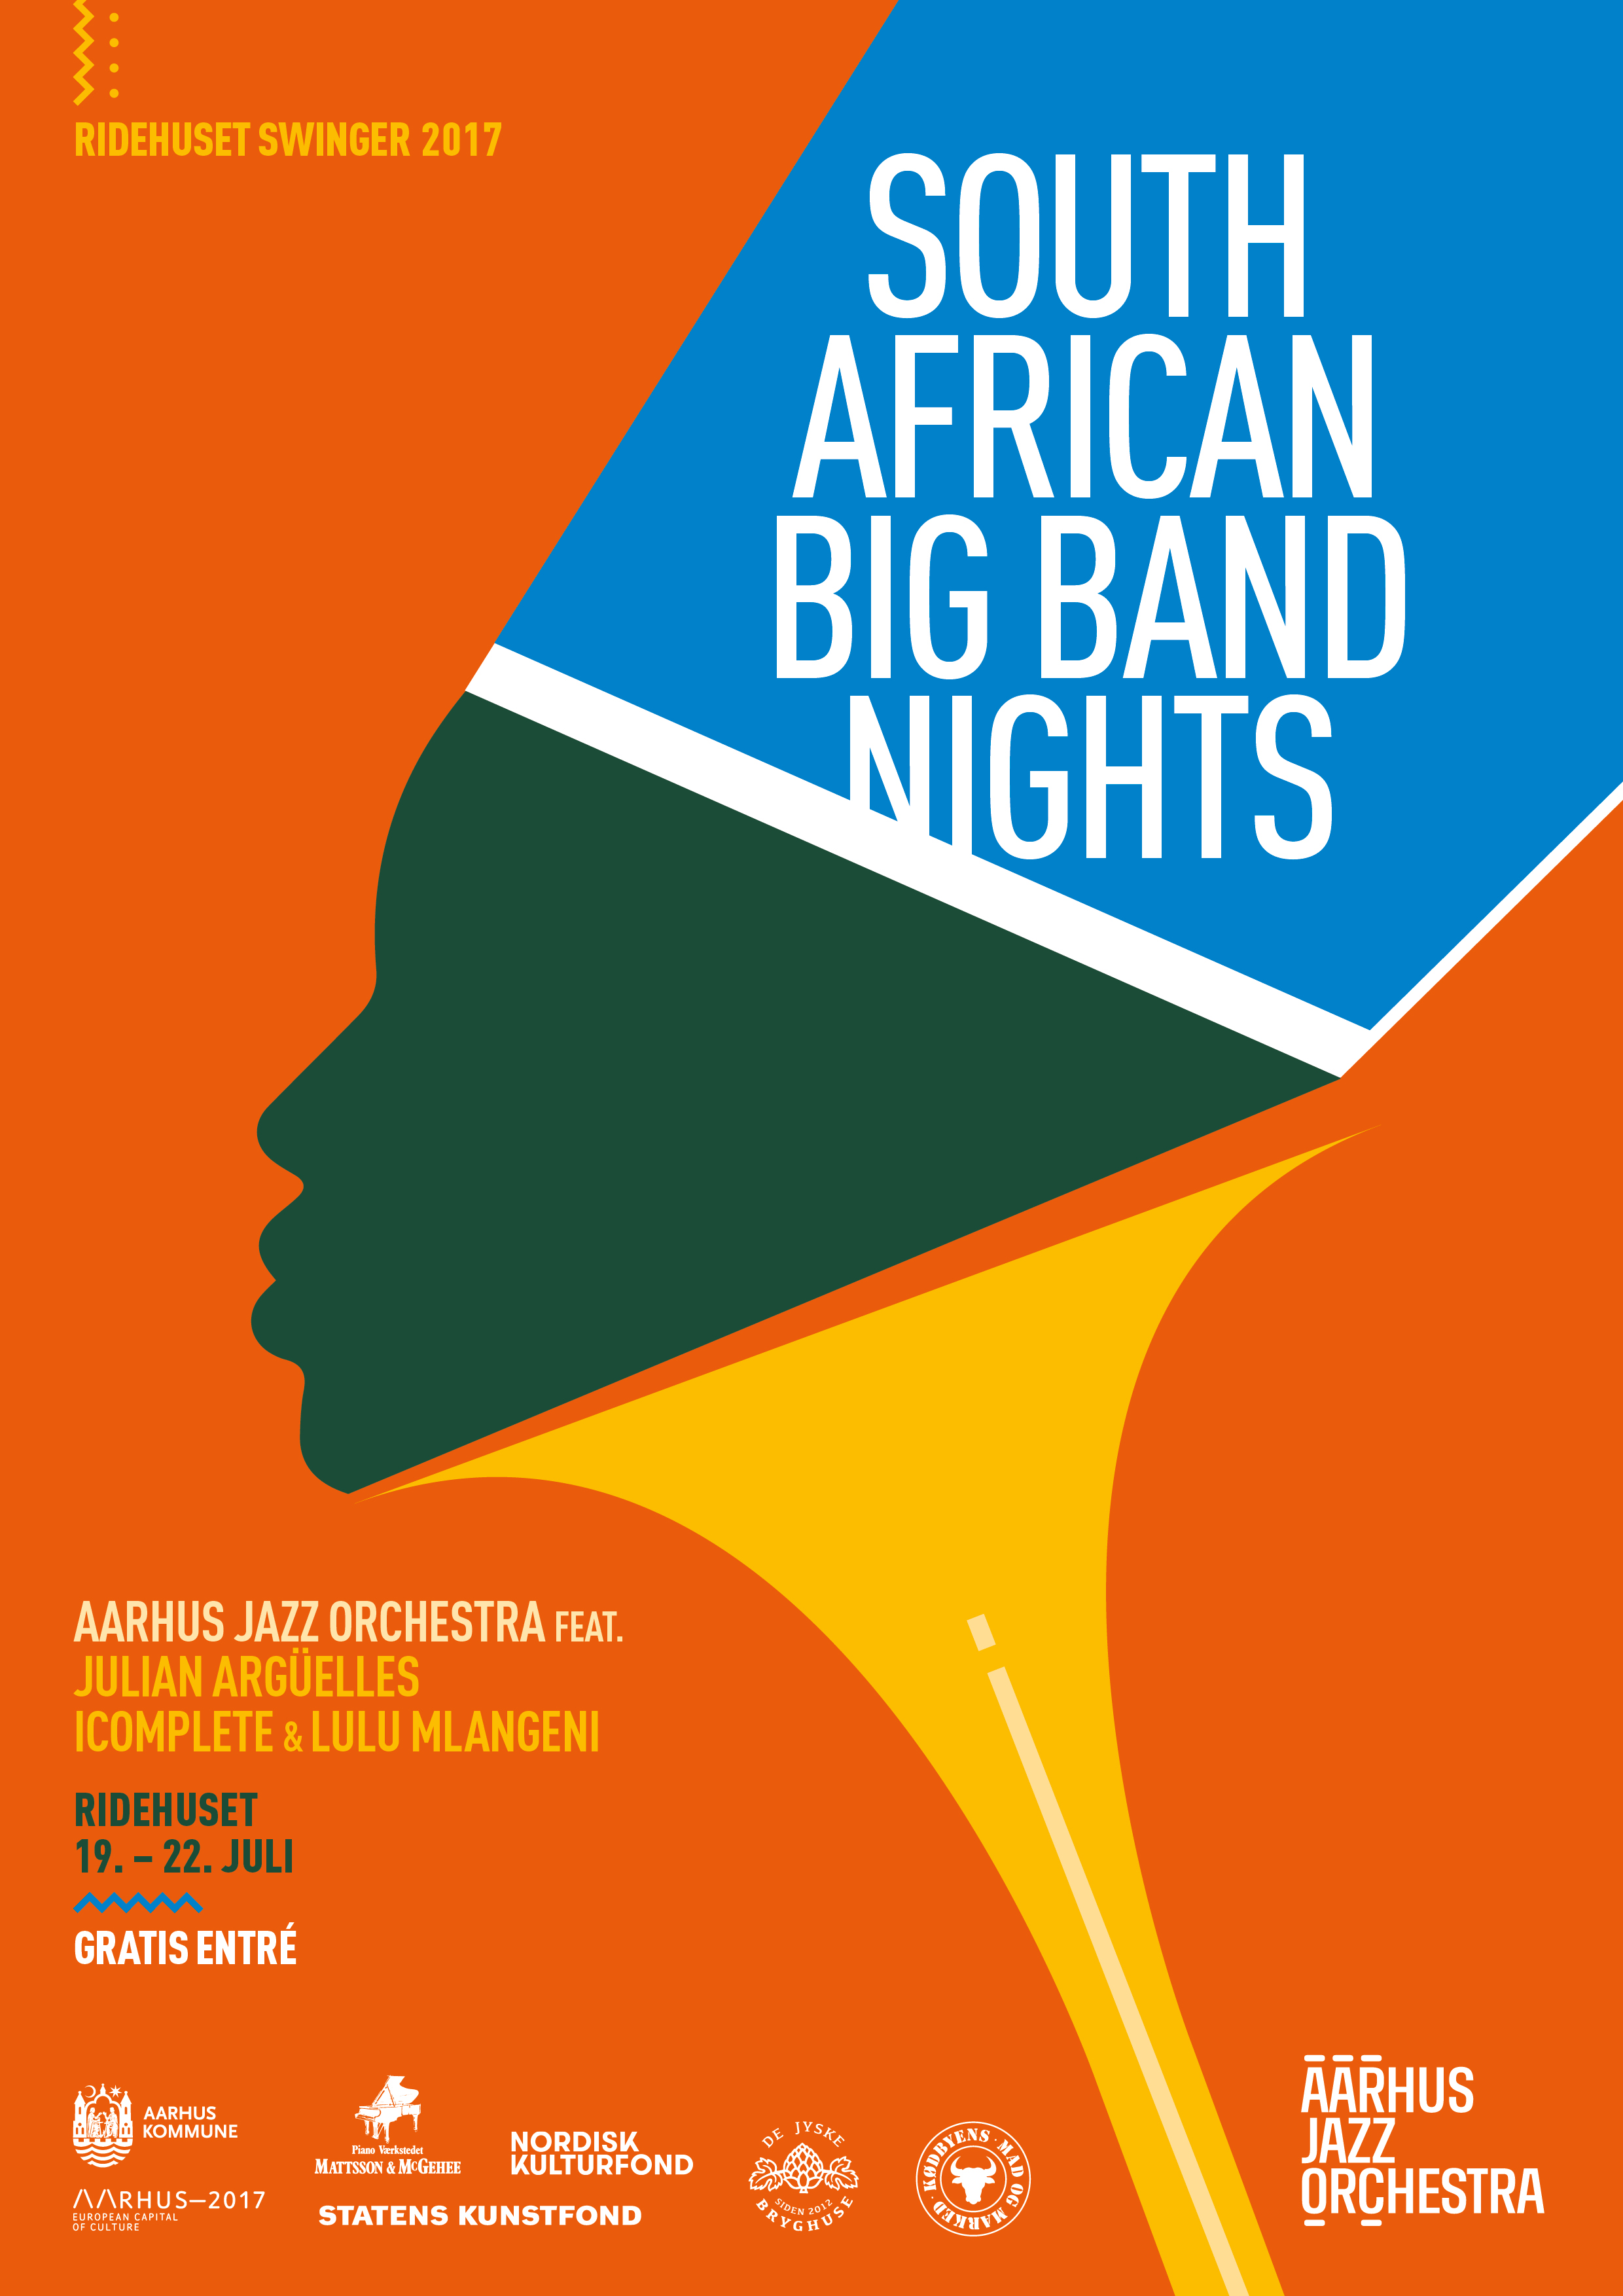 Aarhus Jazz Orchestra – South African Big Band Nights